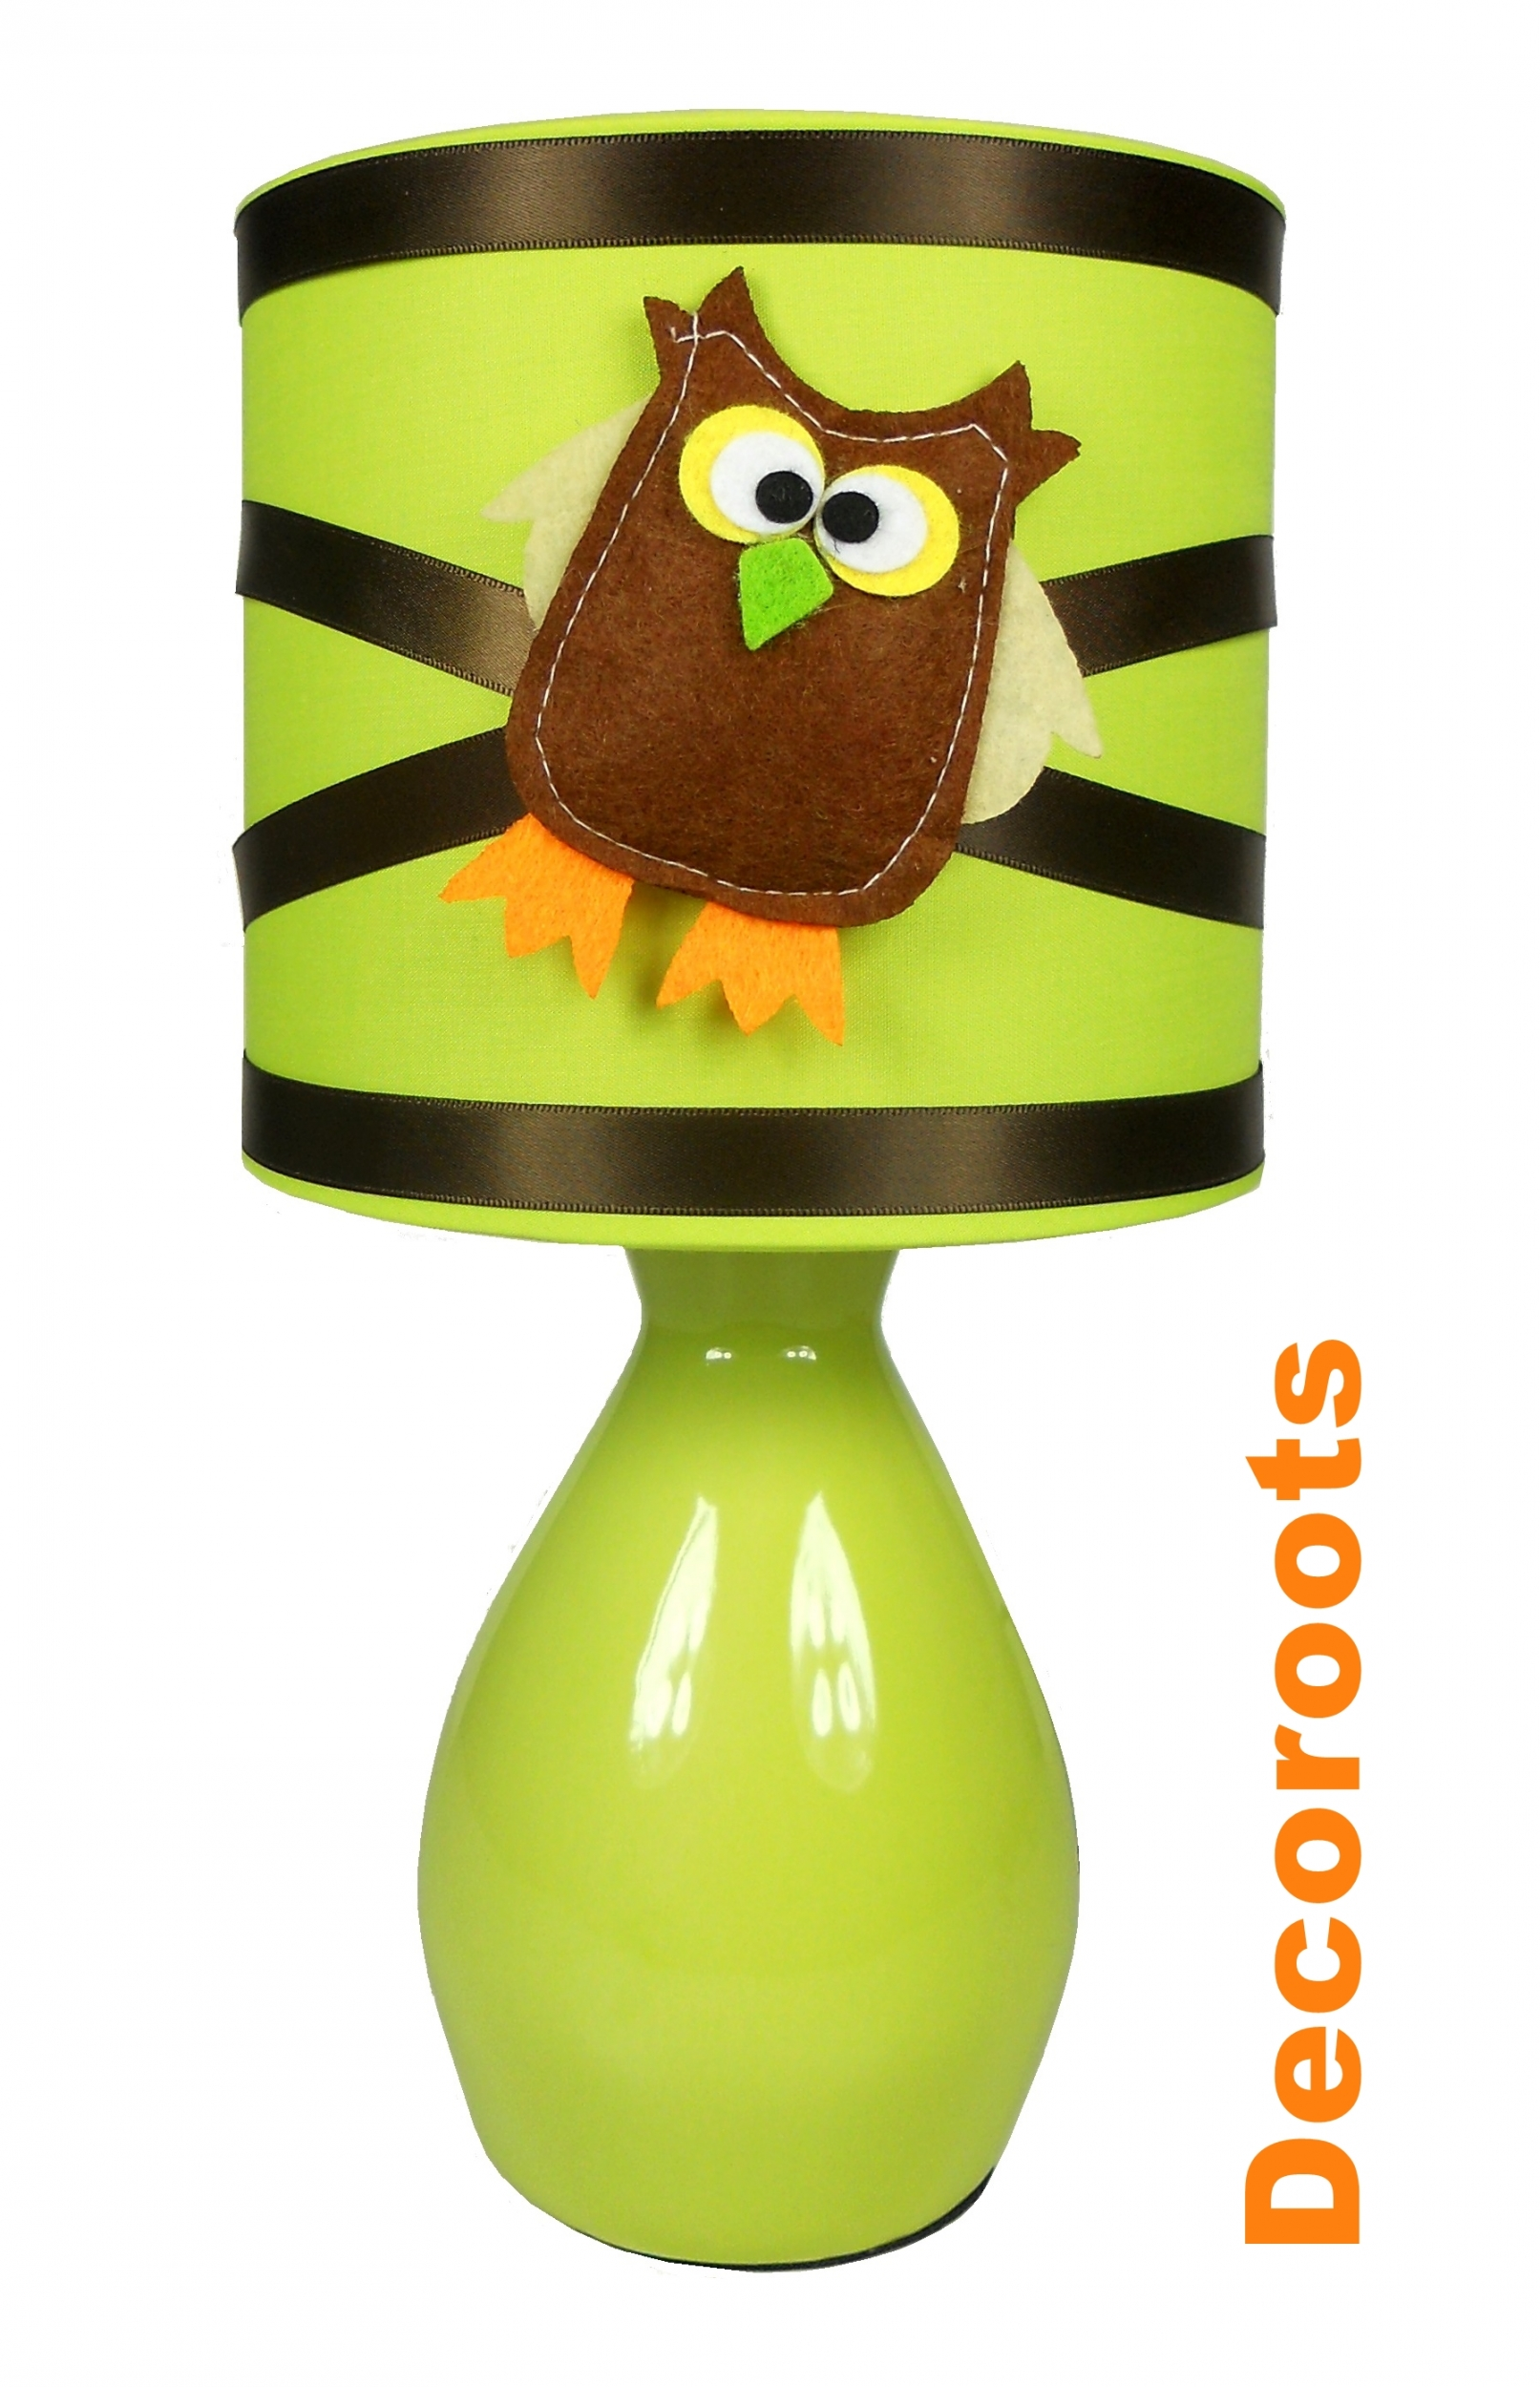 lampe de chevet hibou vert anis et marron chocolat. Black Bedroom Furniture Sets. Home Design Ideas